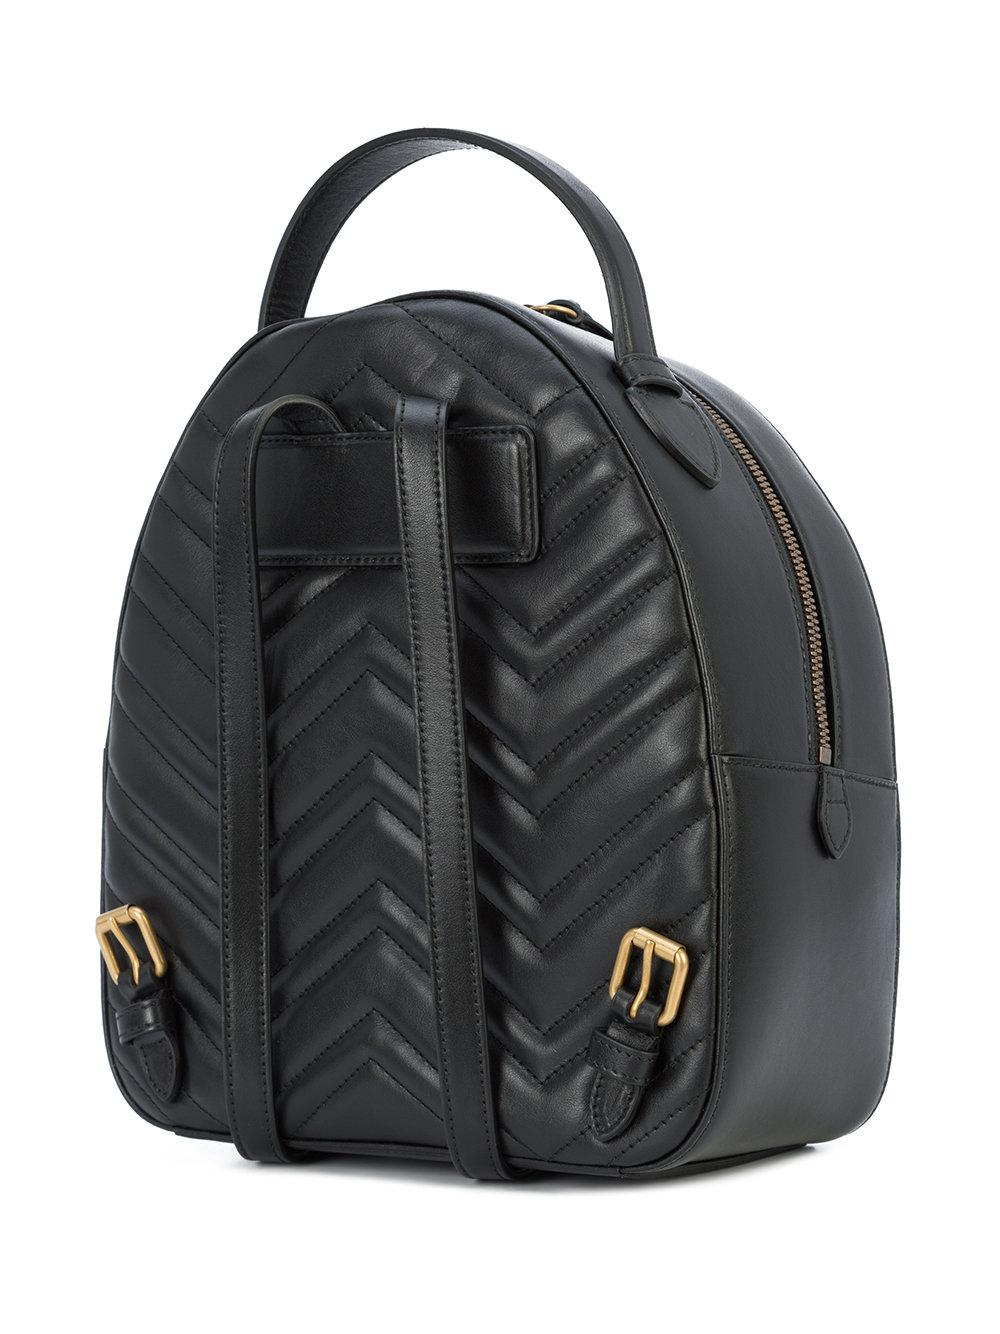 88fa8bbe93bb Gucci Gg Marmont Animal Studs Backpack in Black - Lyst